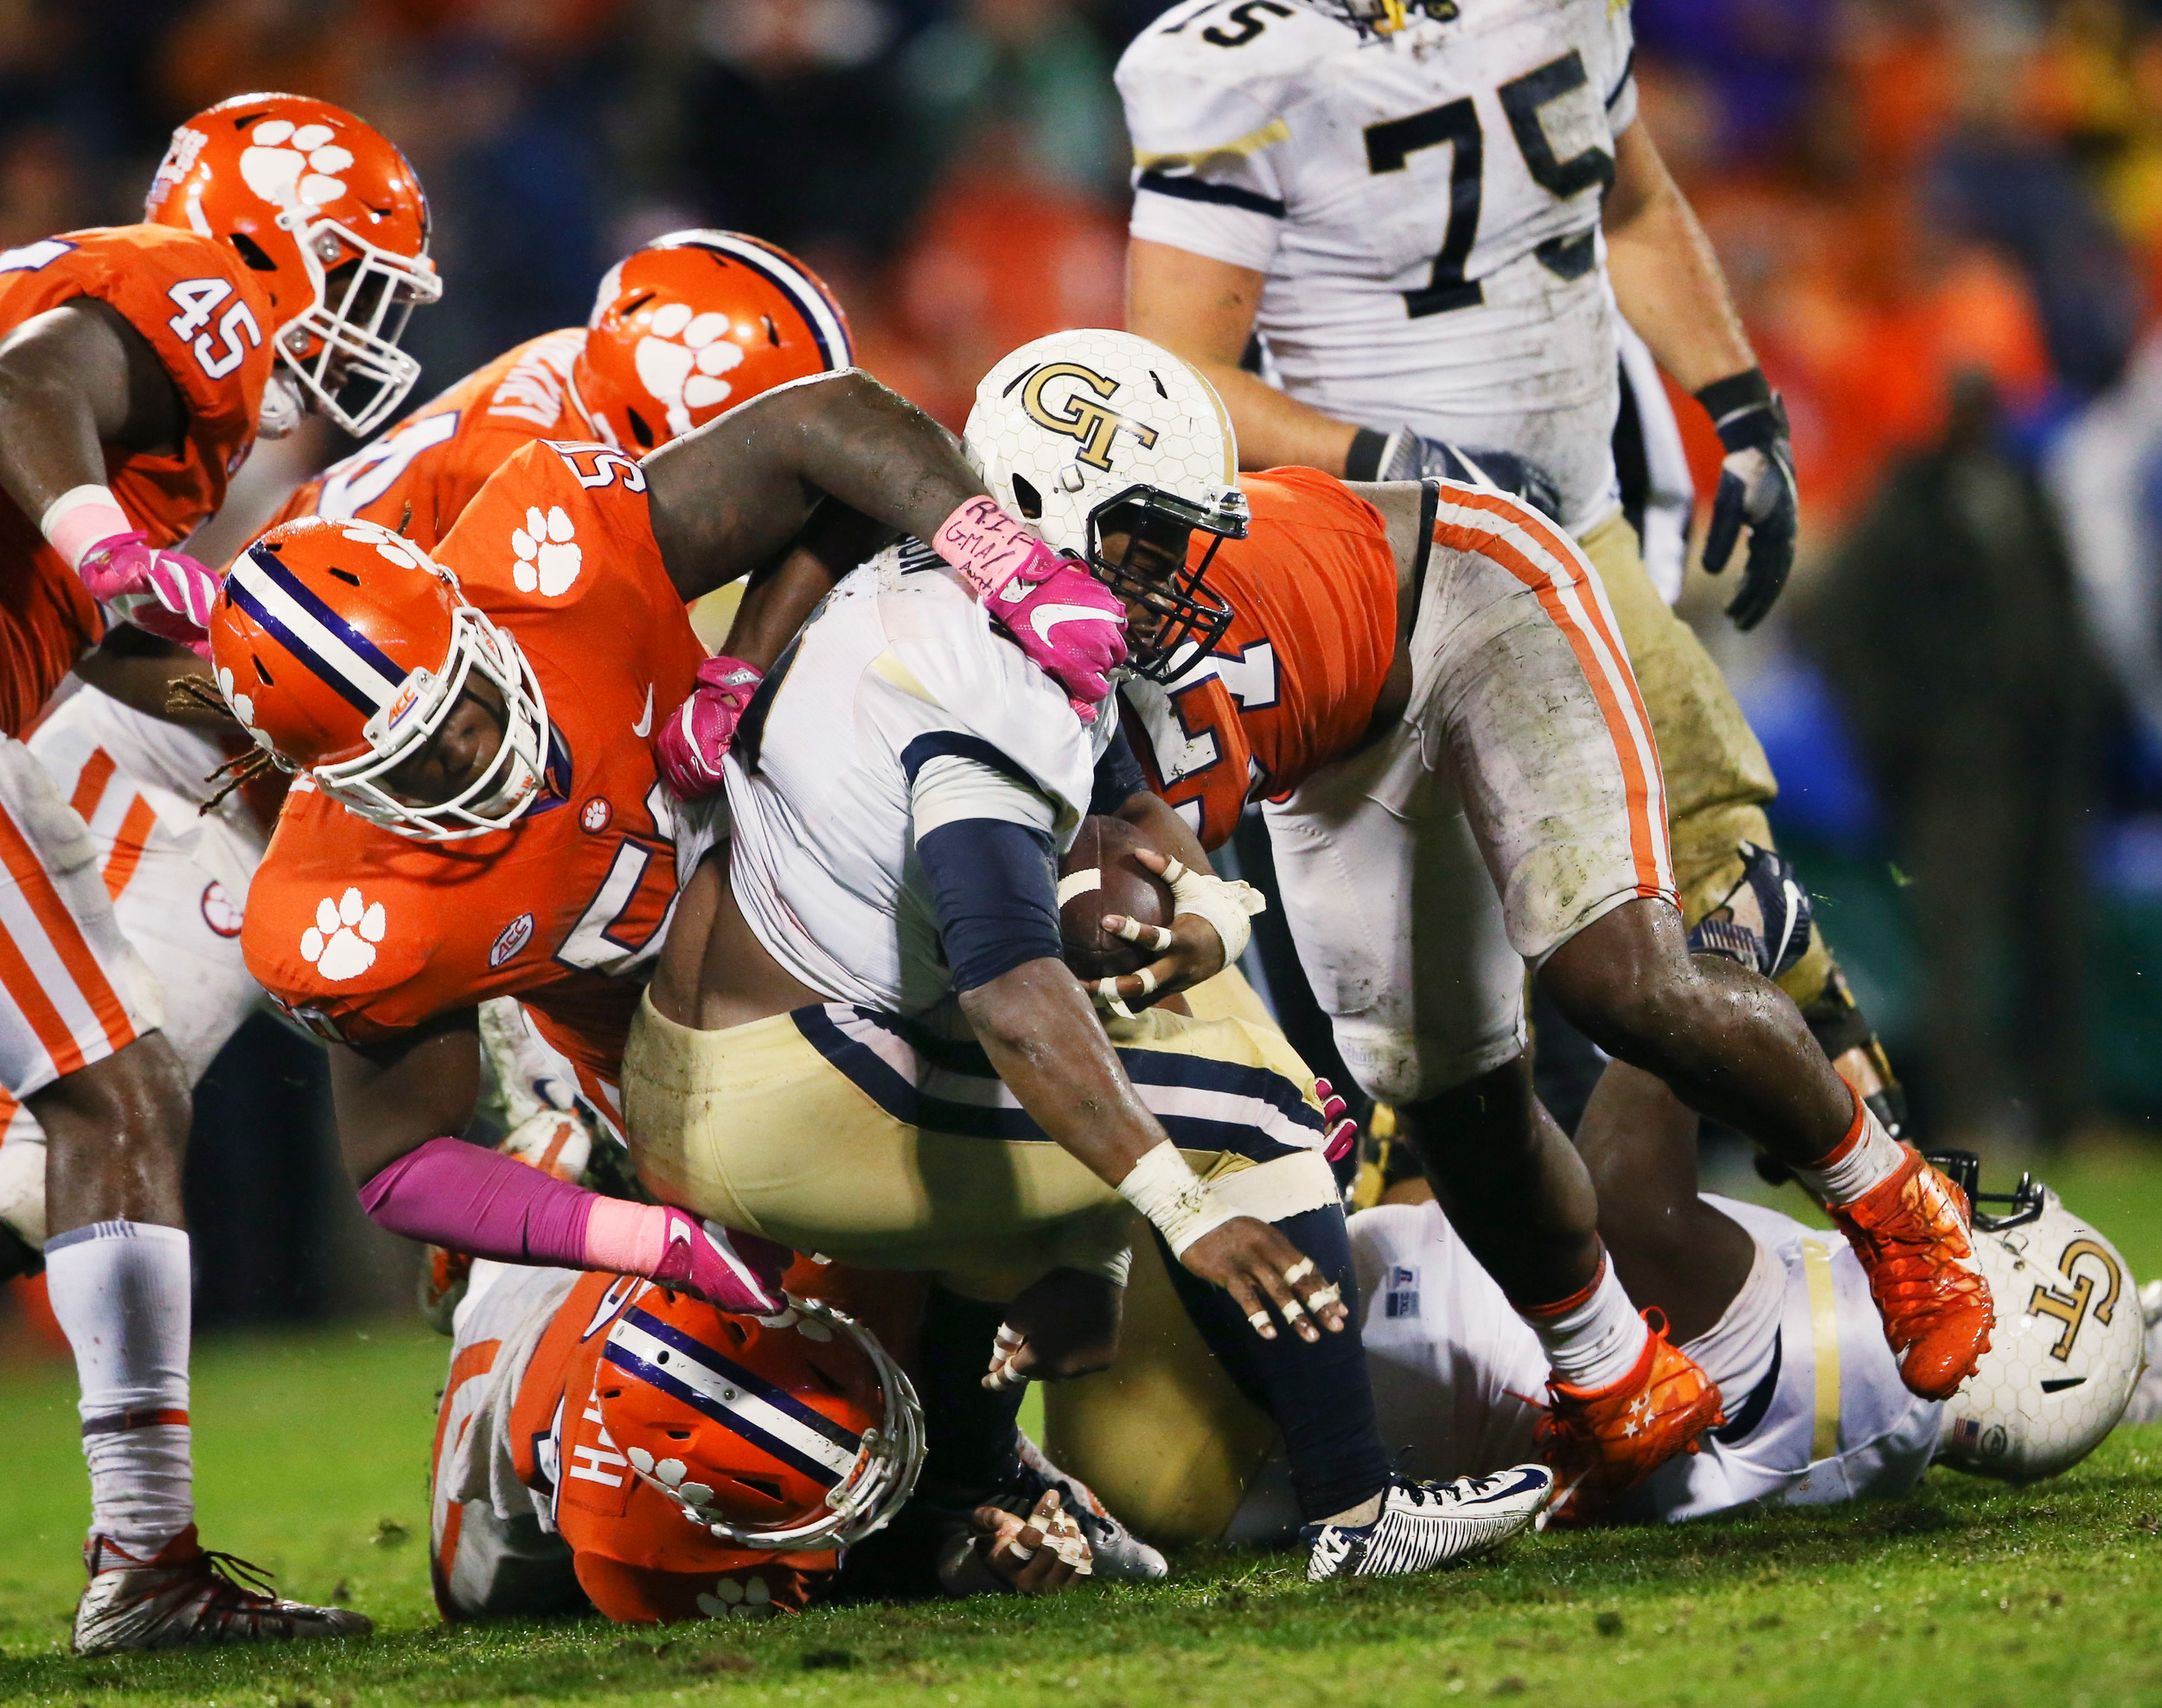 The Associated Press  Georgia Tech running back KirVonte Benson (30) is stopped by a host of Clemson Tigers in Clemson's 24-10 victory on Saturday in Clemson. The Tigers will be taking on N.C. State on Saturday with a the ACC Atlantic Division title on the line.